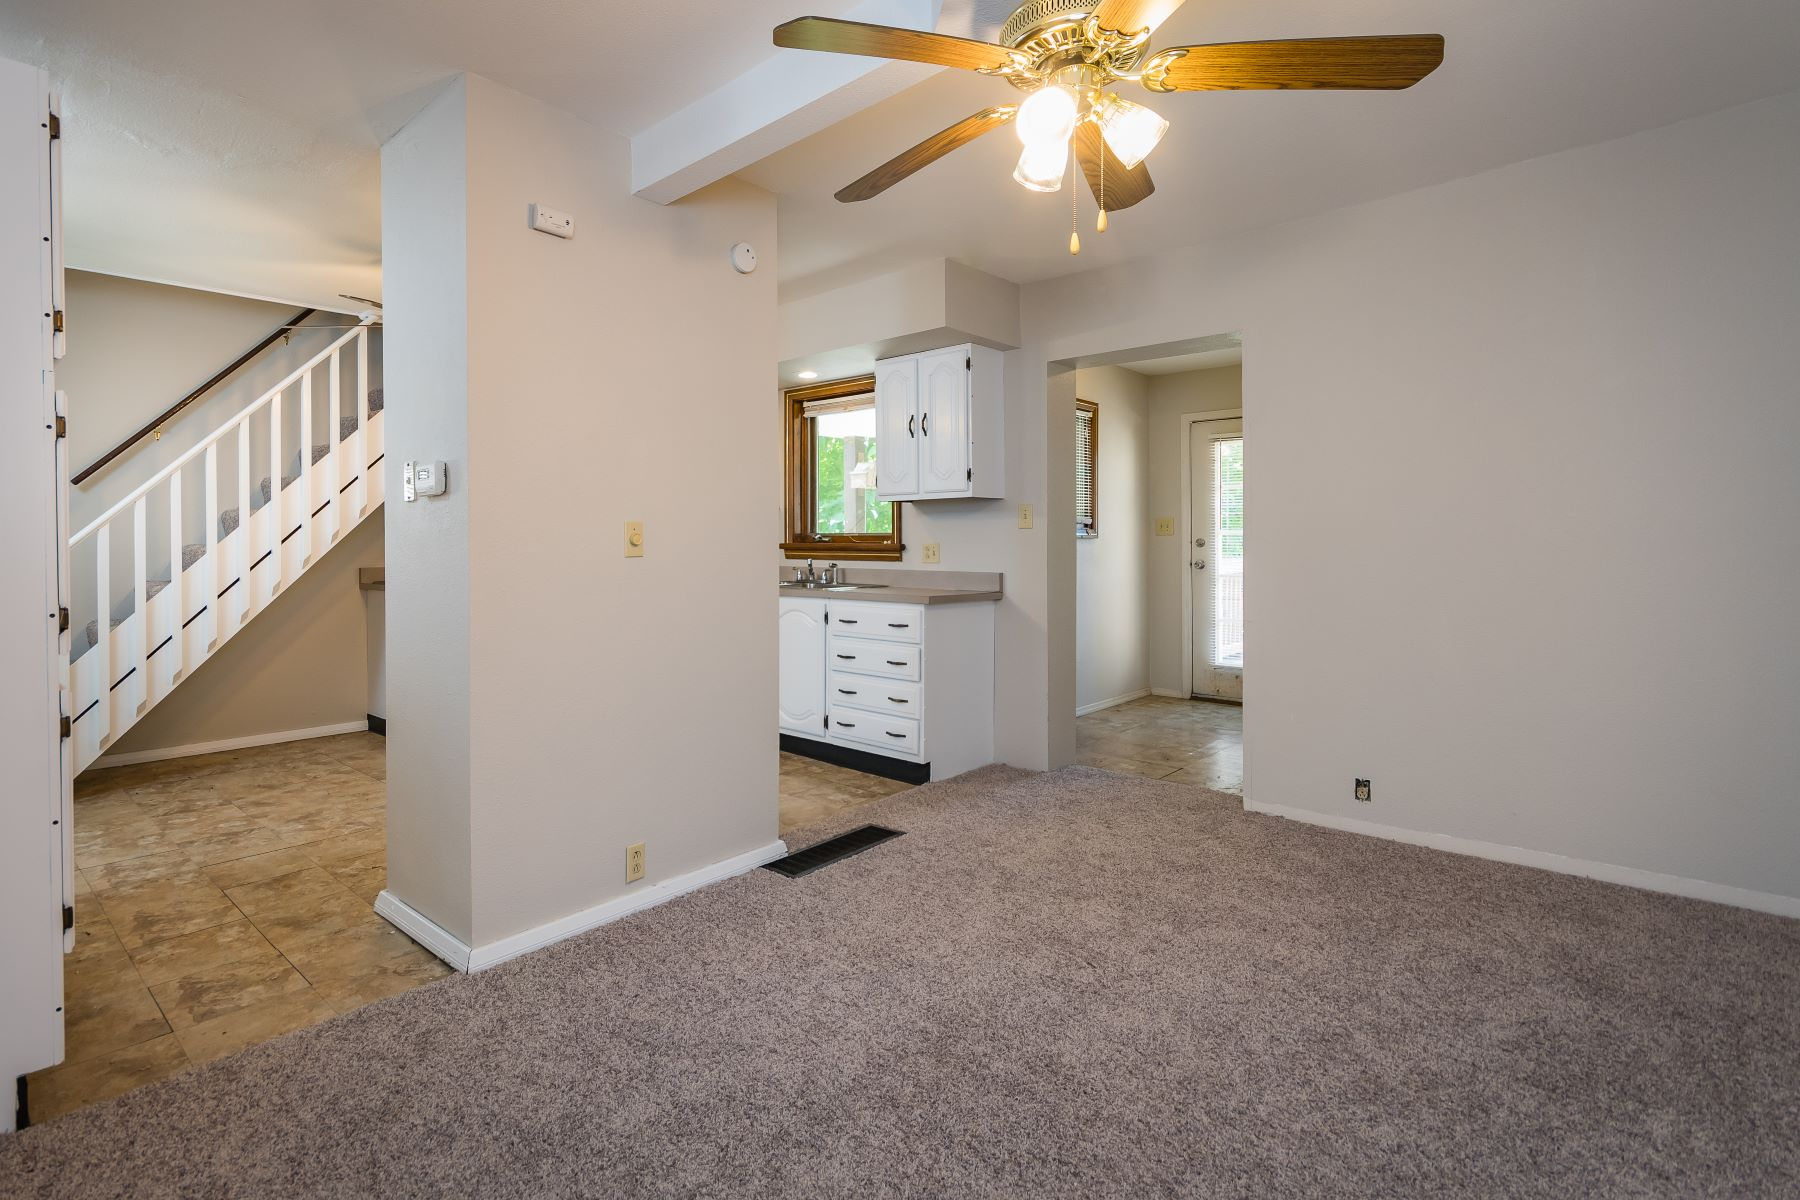 Additional photo for property listing at Great Dogtown Multi-building Property 6318 West Park Avenue St. Louis, Missouri 63139 United States